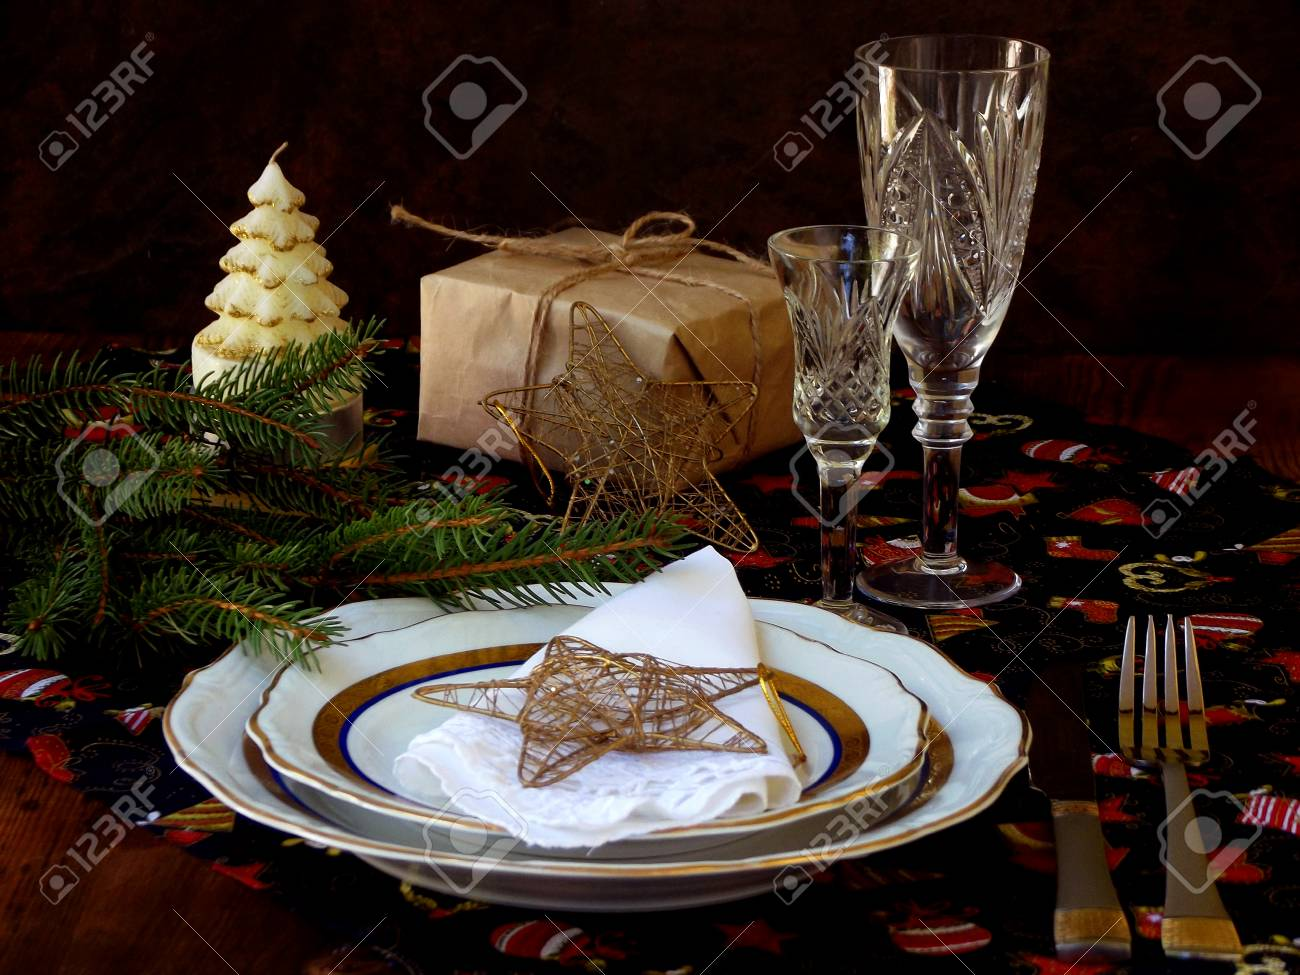 holiday rustic Christmas and New Year table setting with xmas